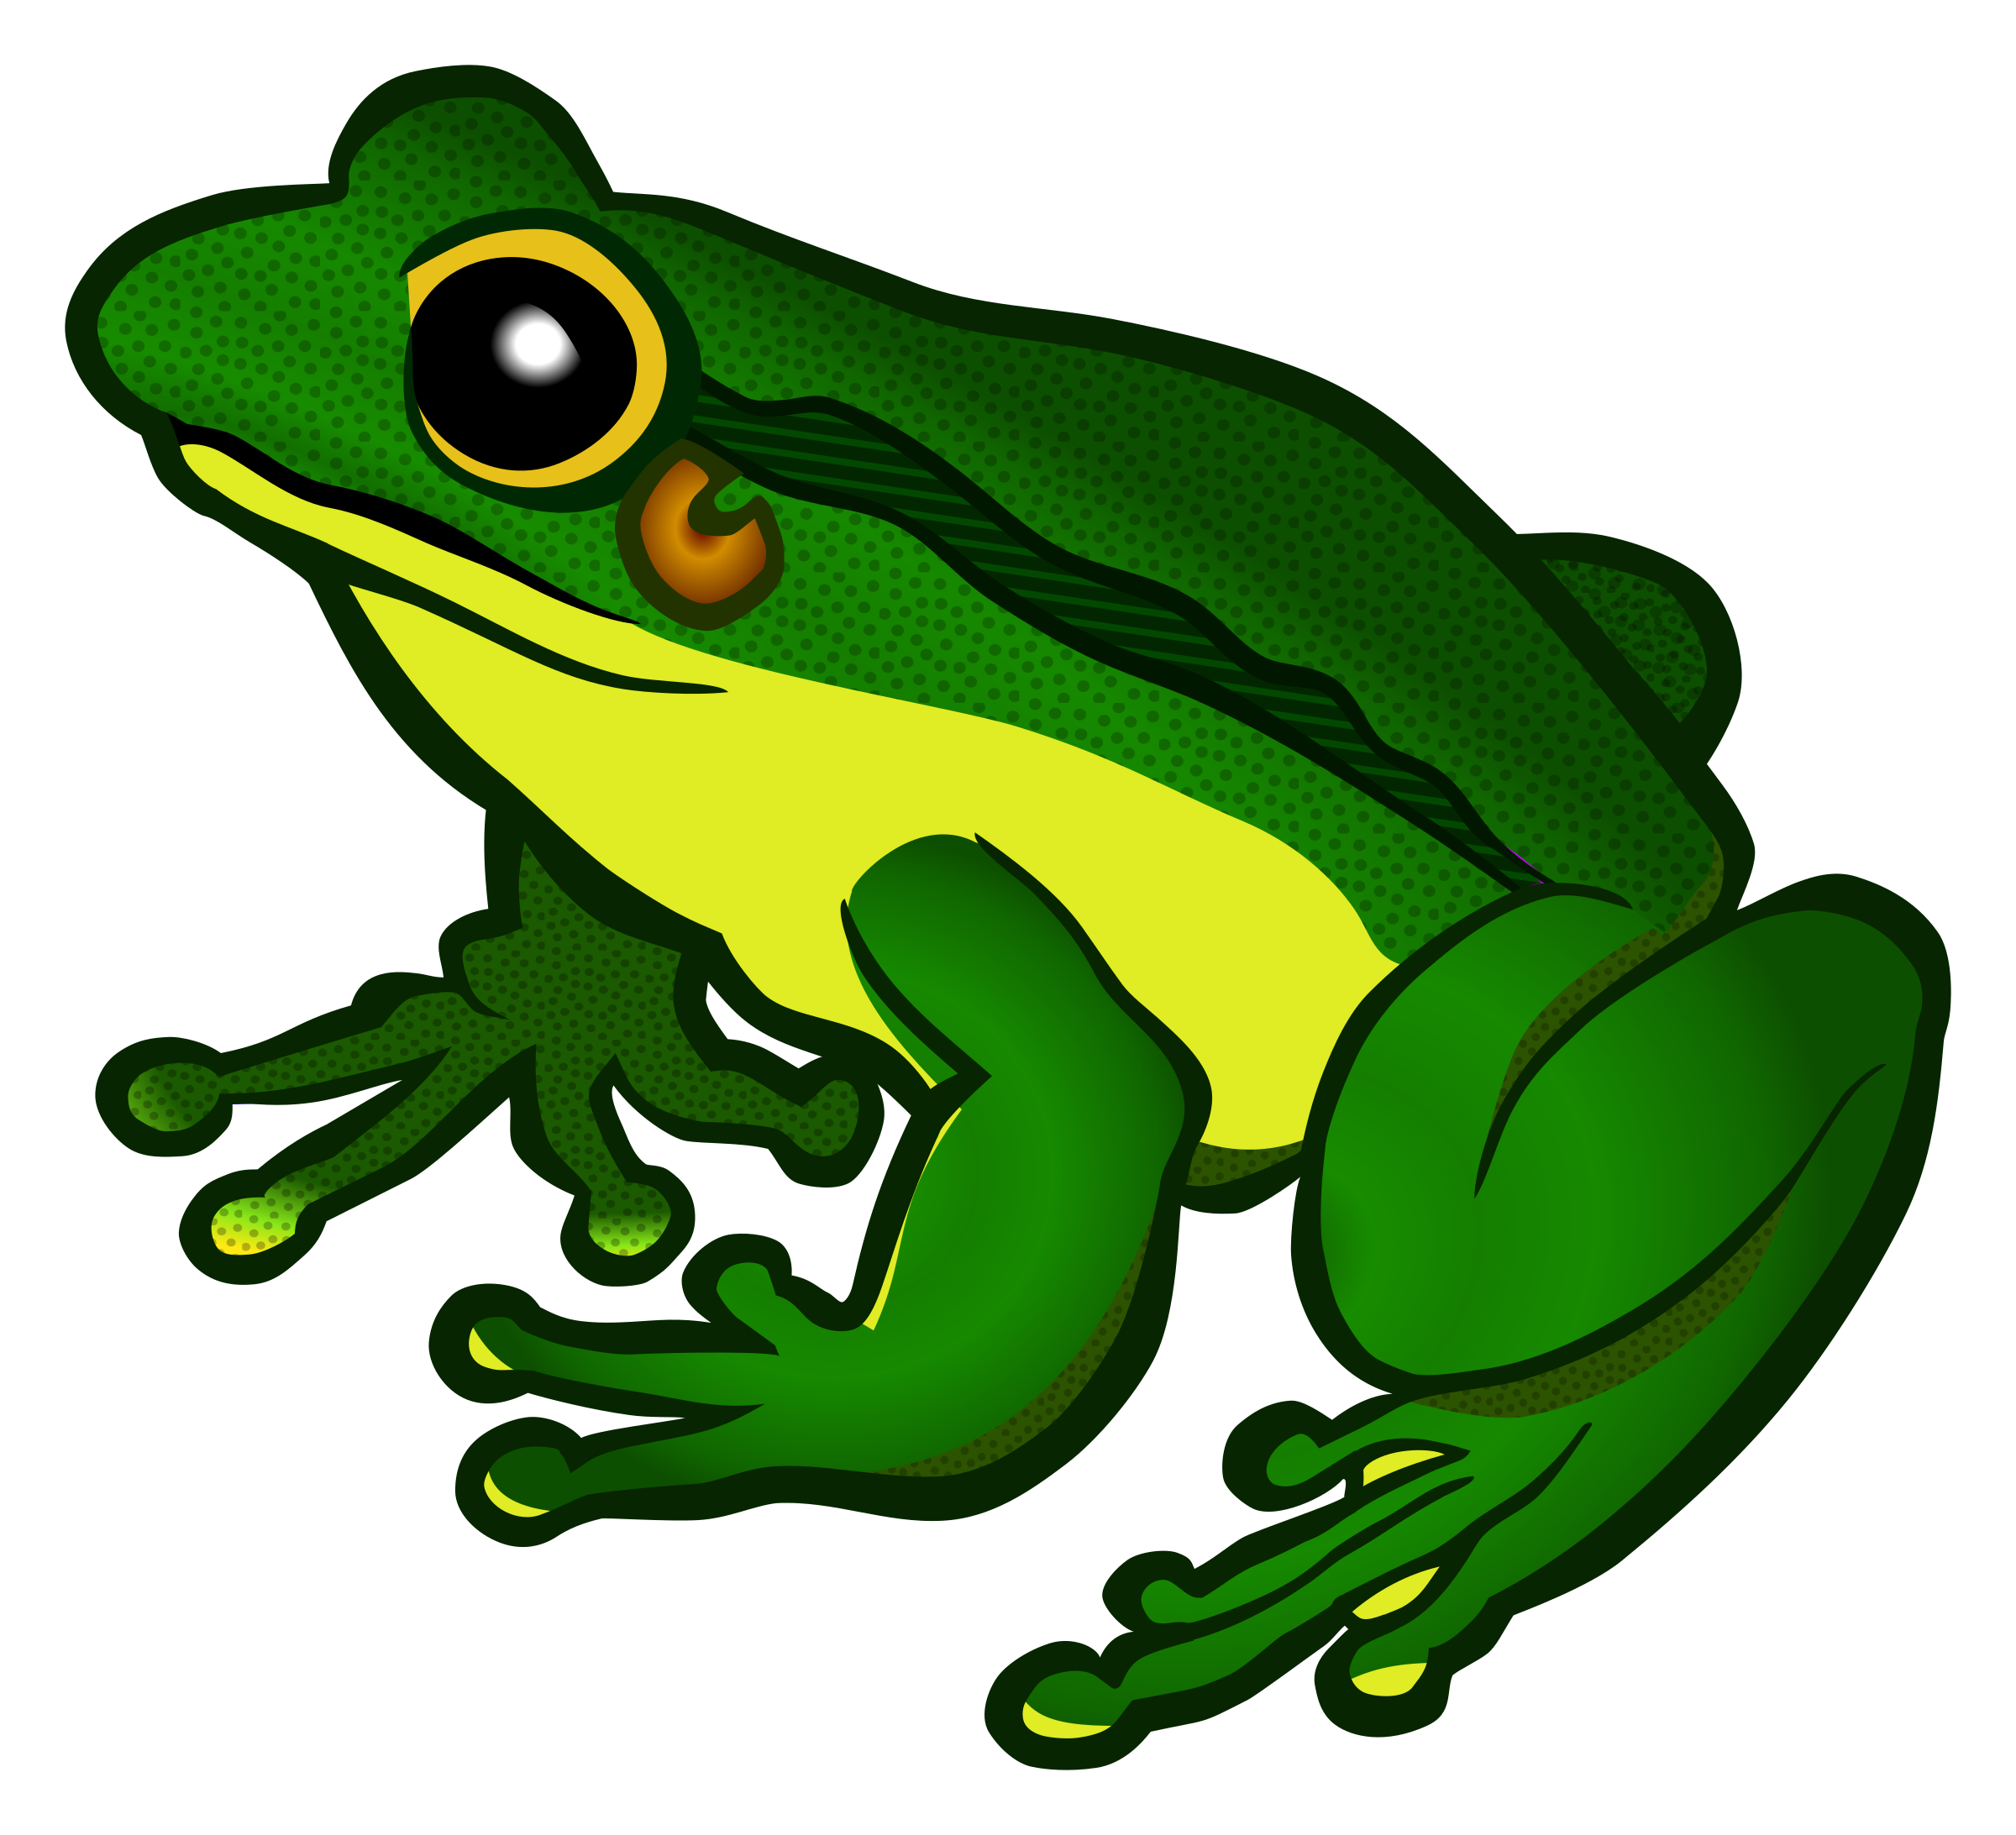 Frog Transparent Background - Frog PNG - Frog PNG HD